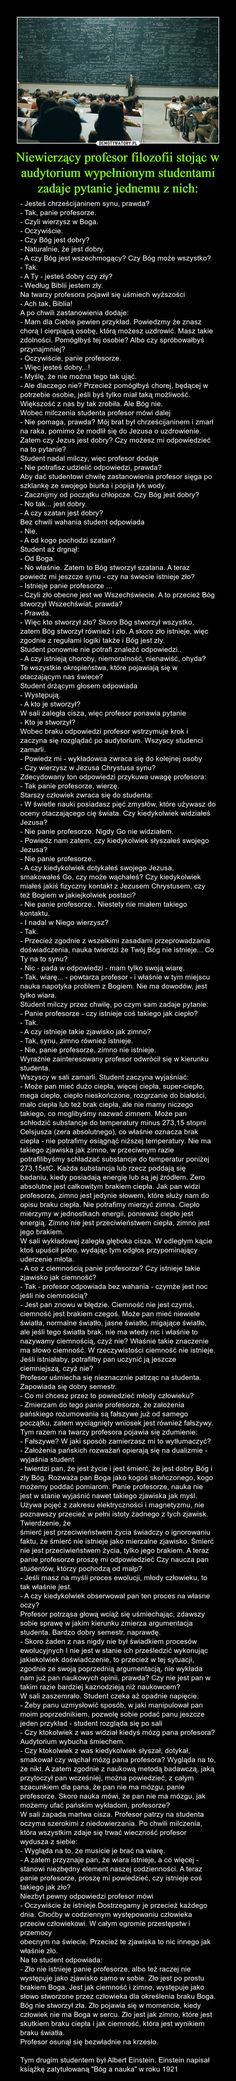 Niewierzący profesor filozofii stojąc w audytorium wypełnionym studentami zadaje pytanie jednemu z nich: Cool Words, Wise Words, Life Rules, Smart People, Life Motivation, Wtf Funny, Albert Einstein, Science And Nature, True Stories